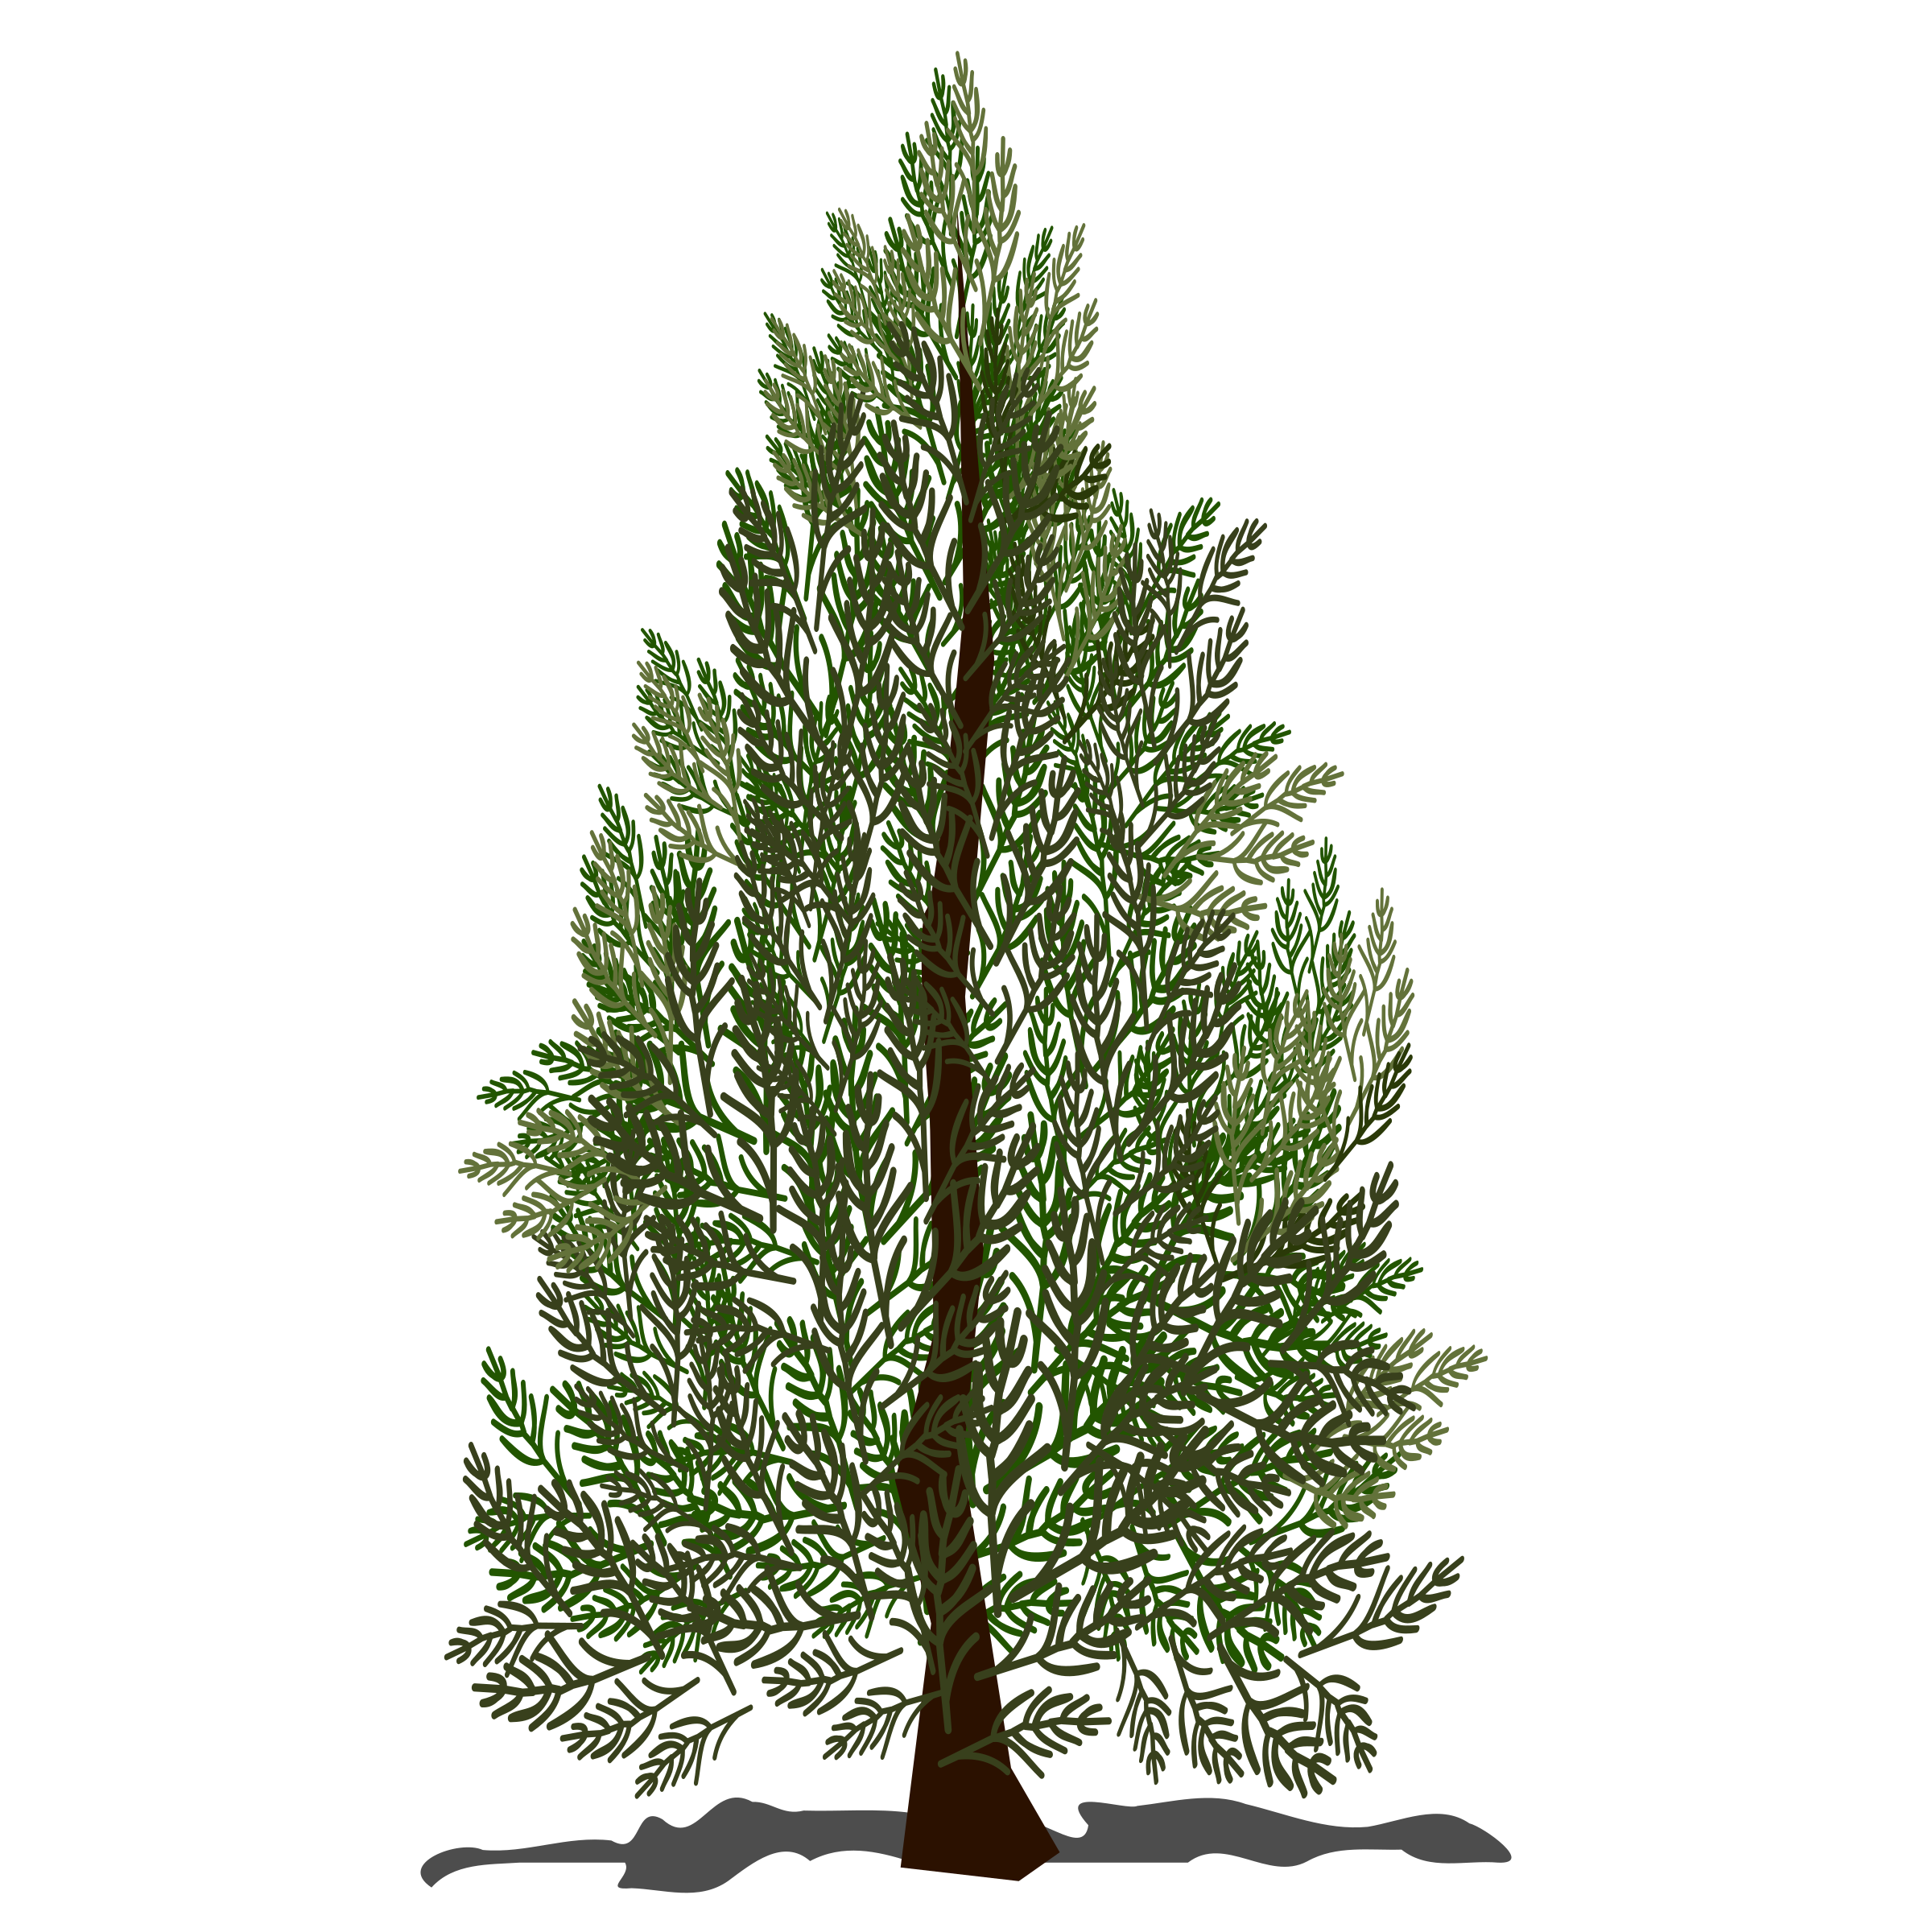 Big image png. Needle clipart pine tree